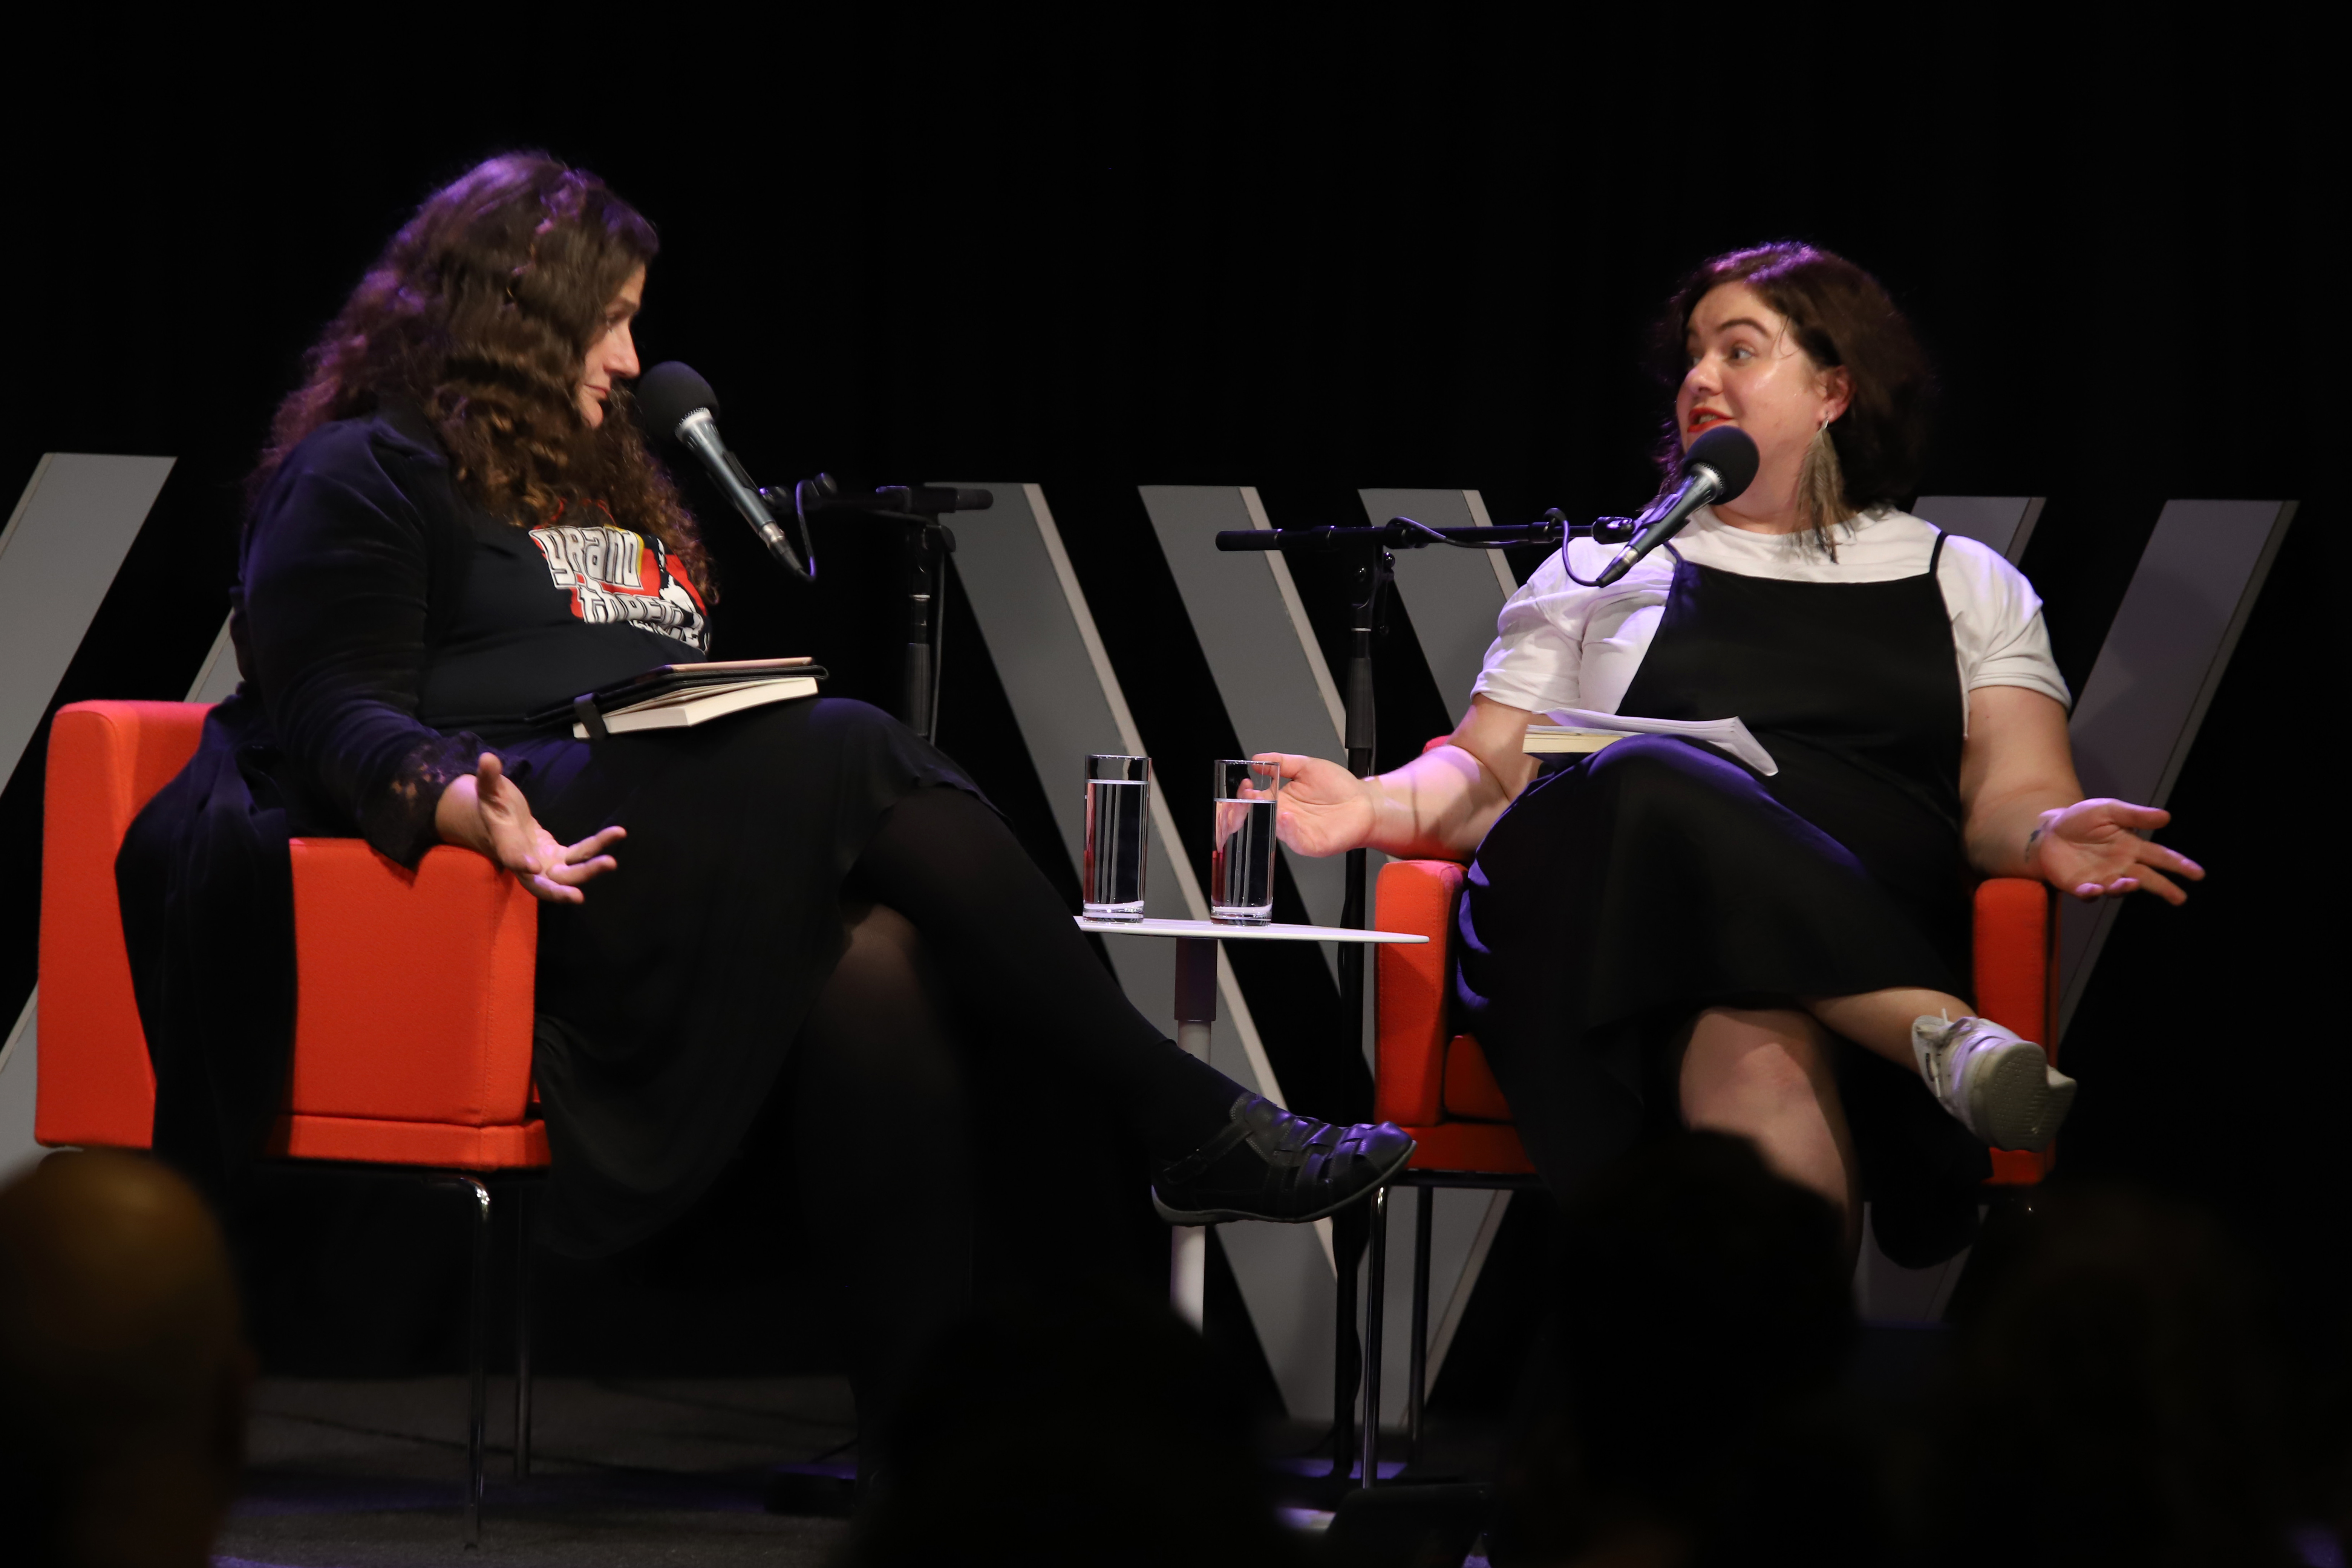 Claire G. Coleman and Alison Whittaker in conversation